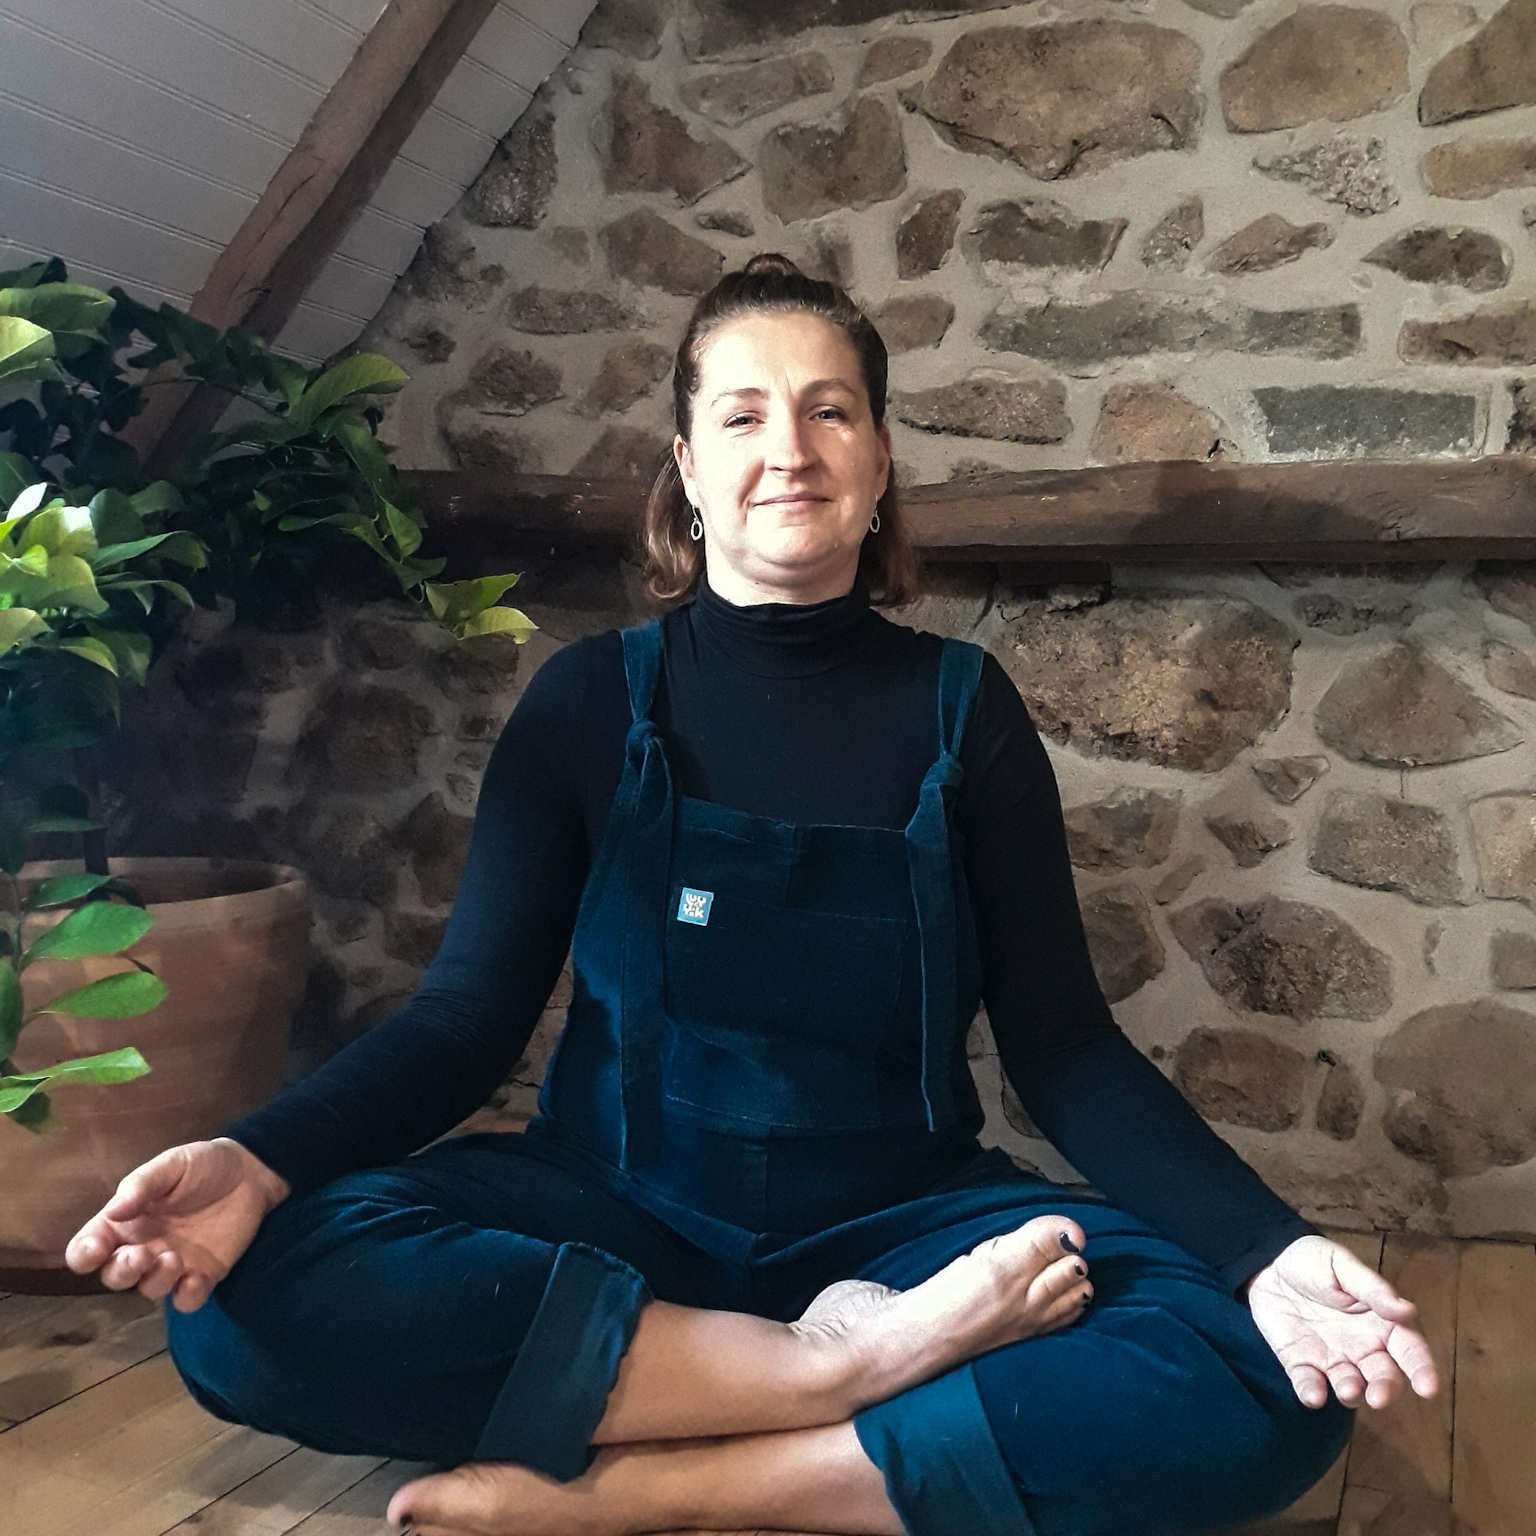 When you've finished come back to neutral and allow the breath to settle. Lift and lengthen your spine and take one more full deep breath. Thank yourself for taking these 5 minutes. Move slowly and see if you can take the feeling of quiet and calm with you into the next part of your day. -